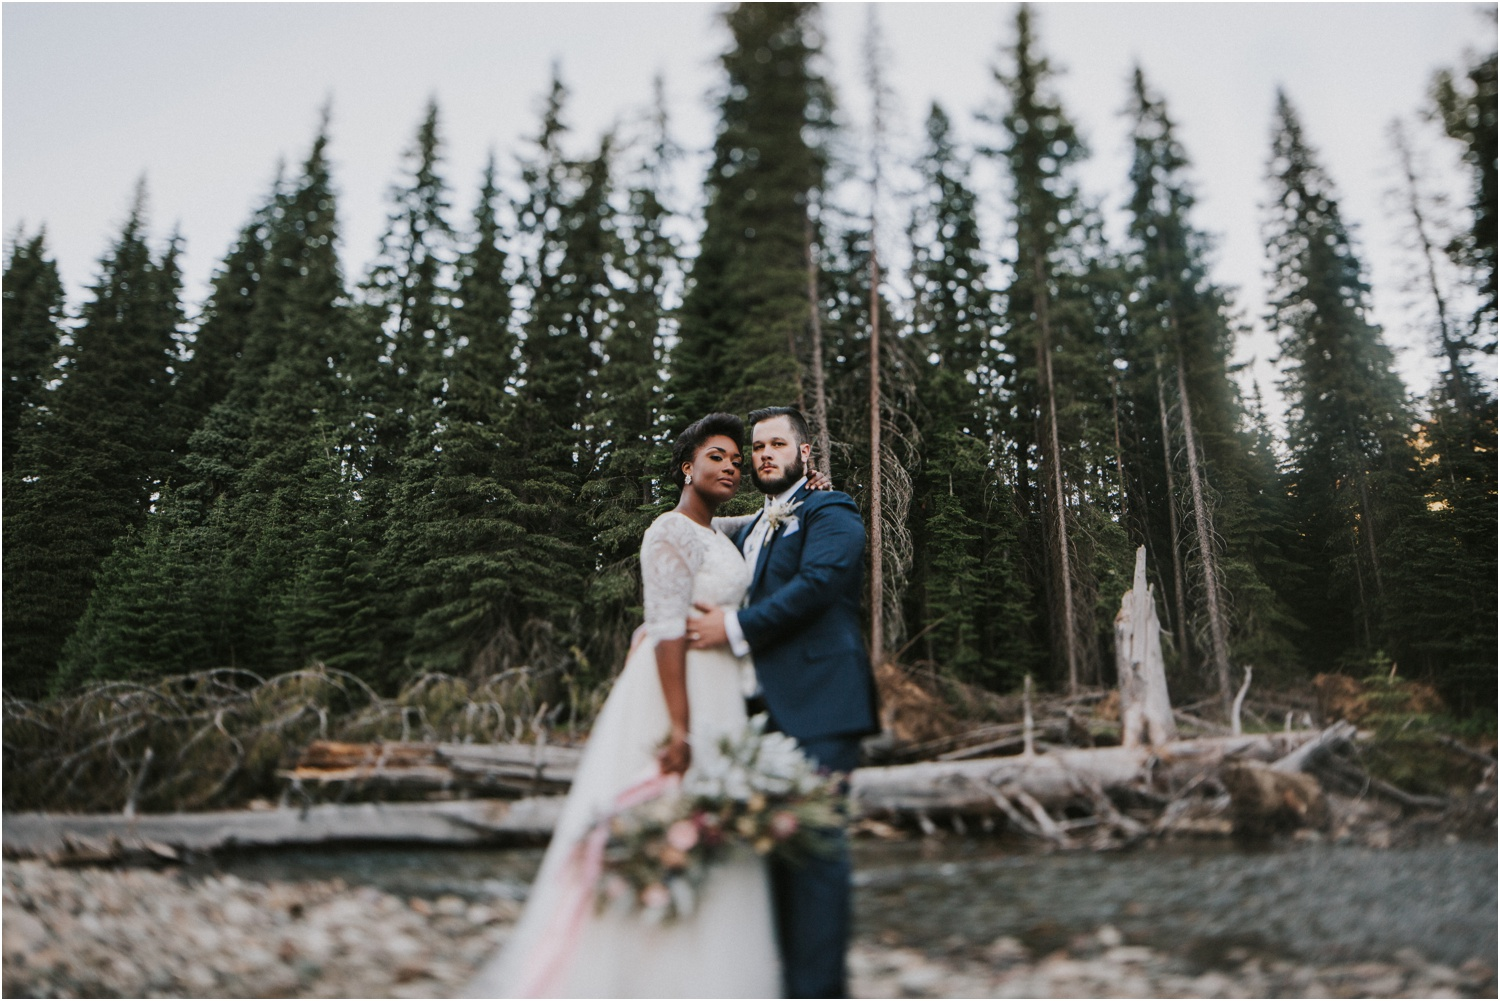 lovestoriesco-amber-phinisee-seattle-mount-rainier-elopement_0072.jpg